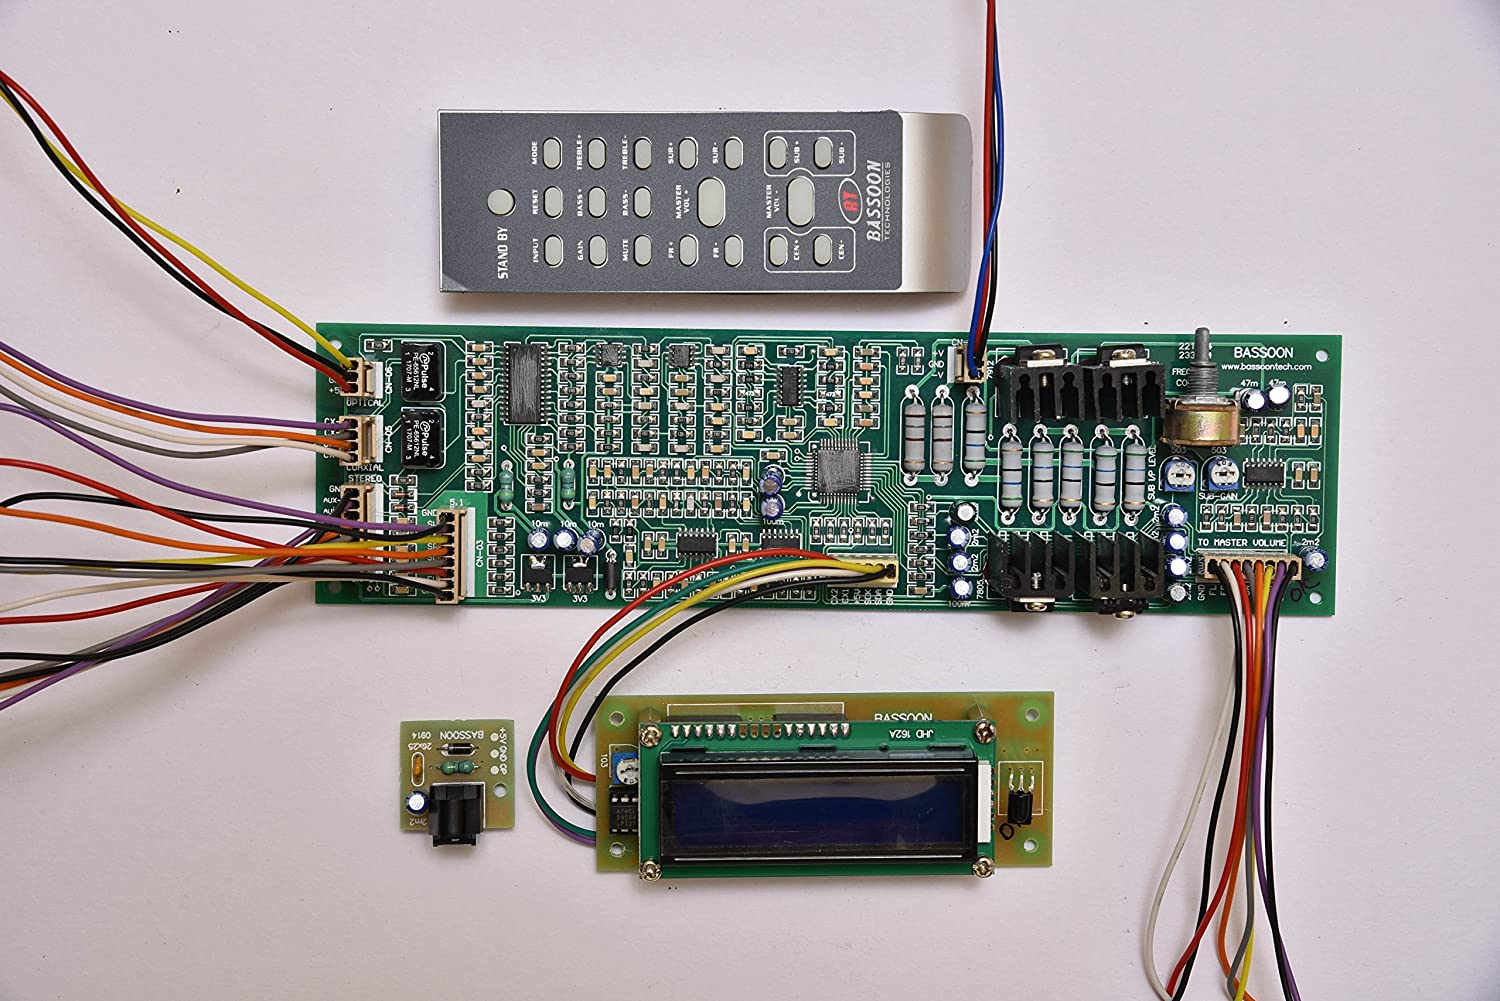 Bassoon 51 Home Theater Remote Board With Optical Amplifierpoweraudiostereo3d Suggested Printed Circuit Electronics